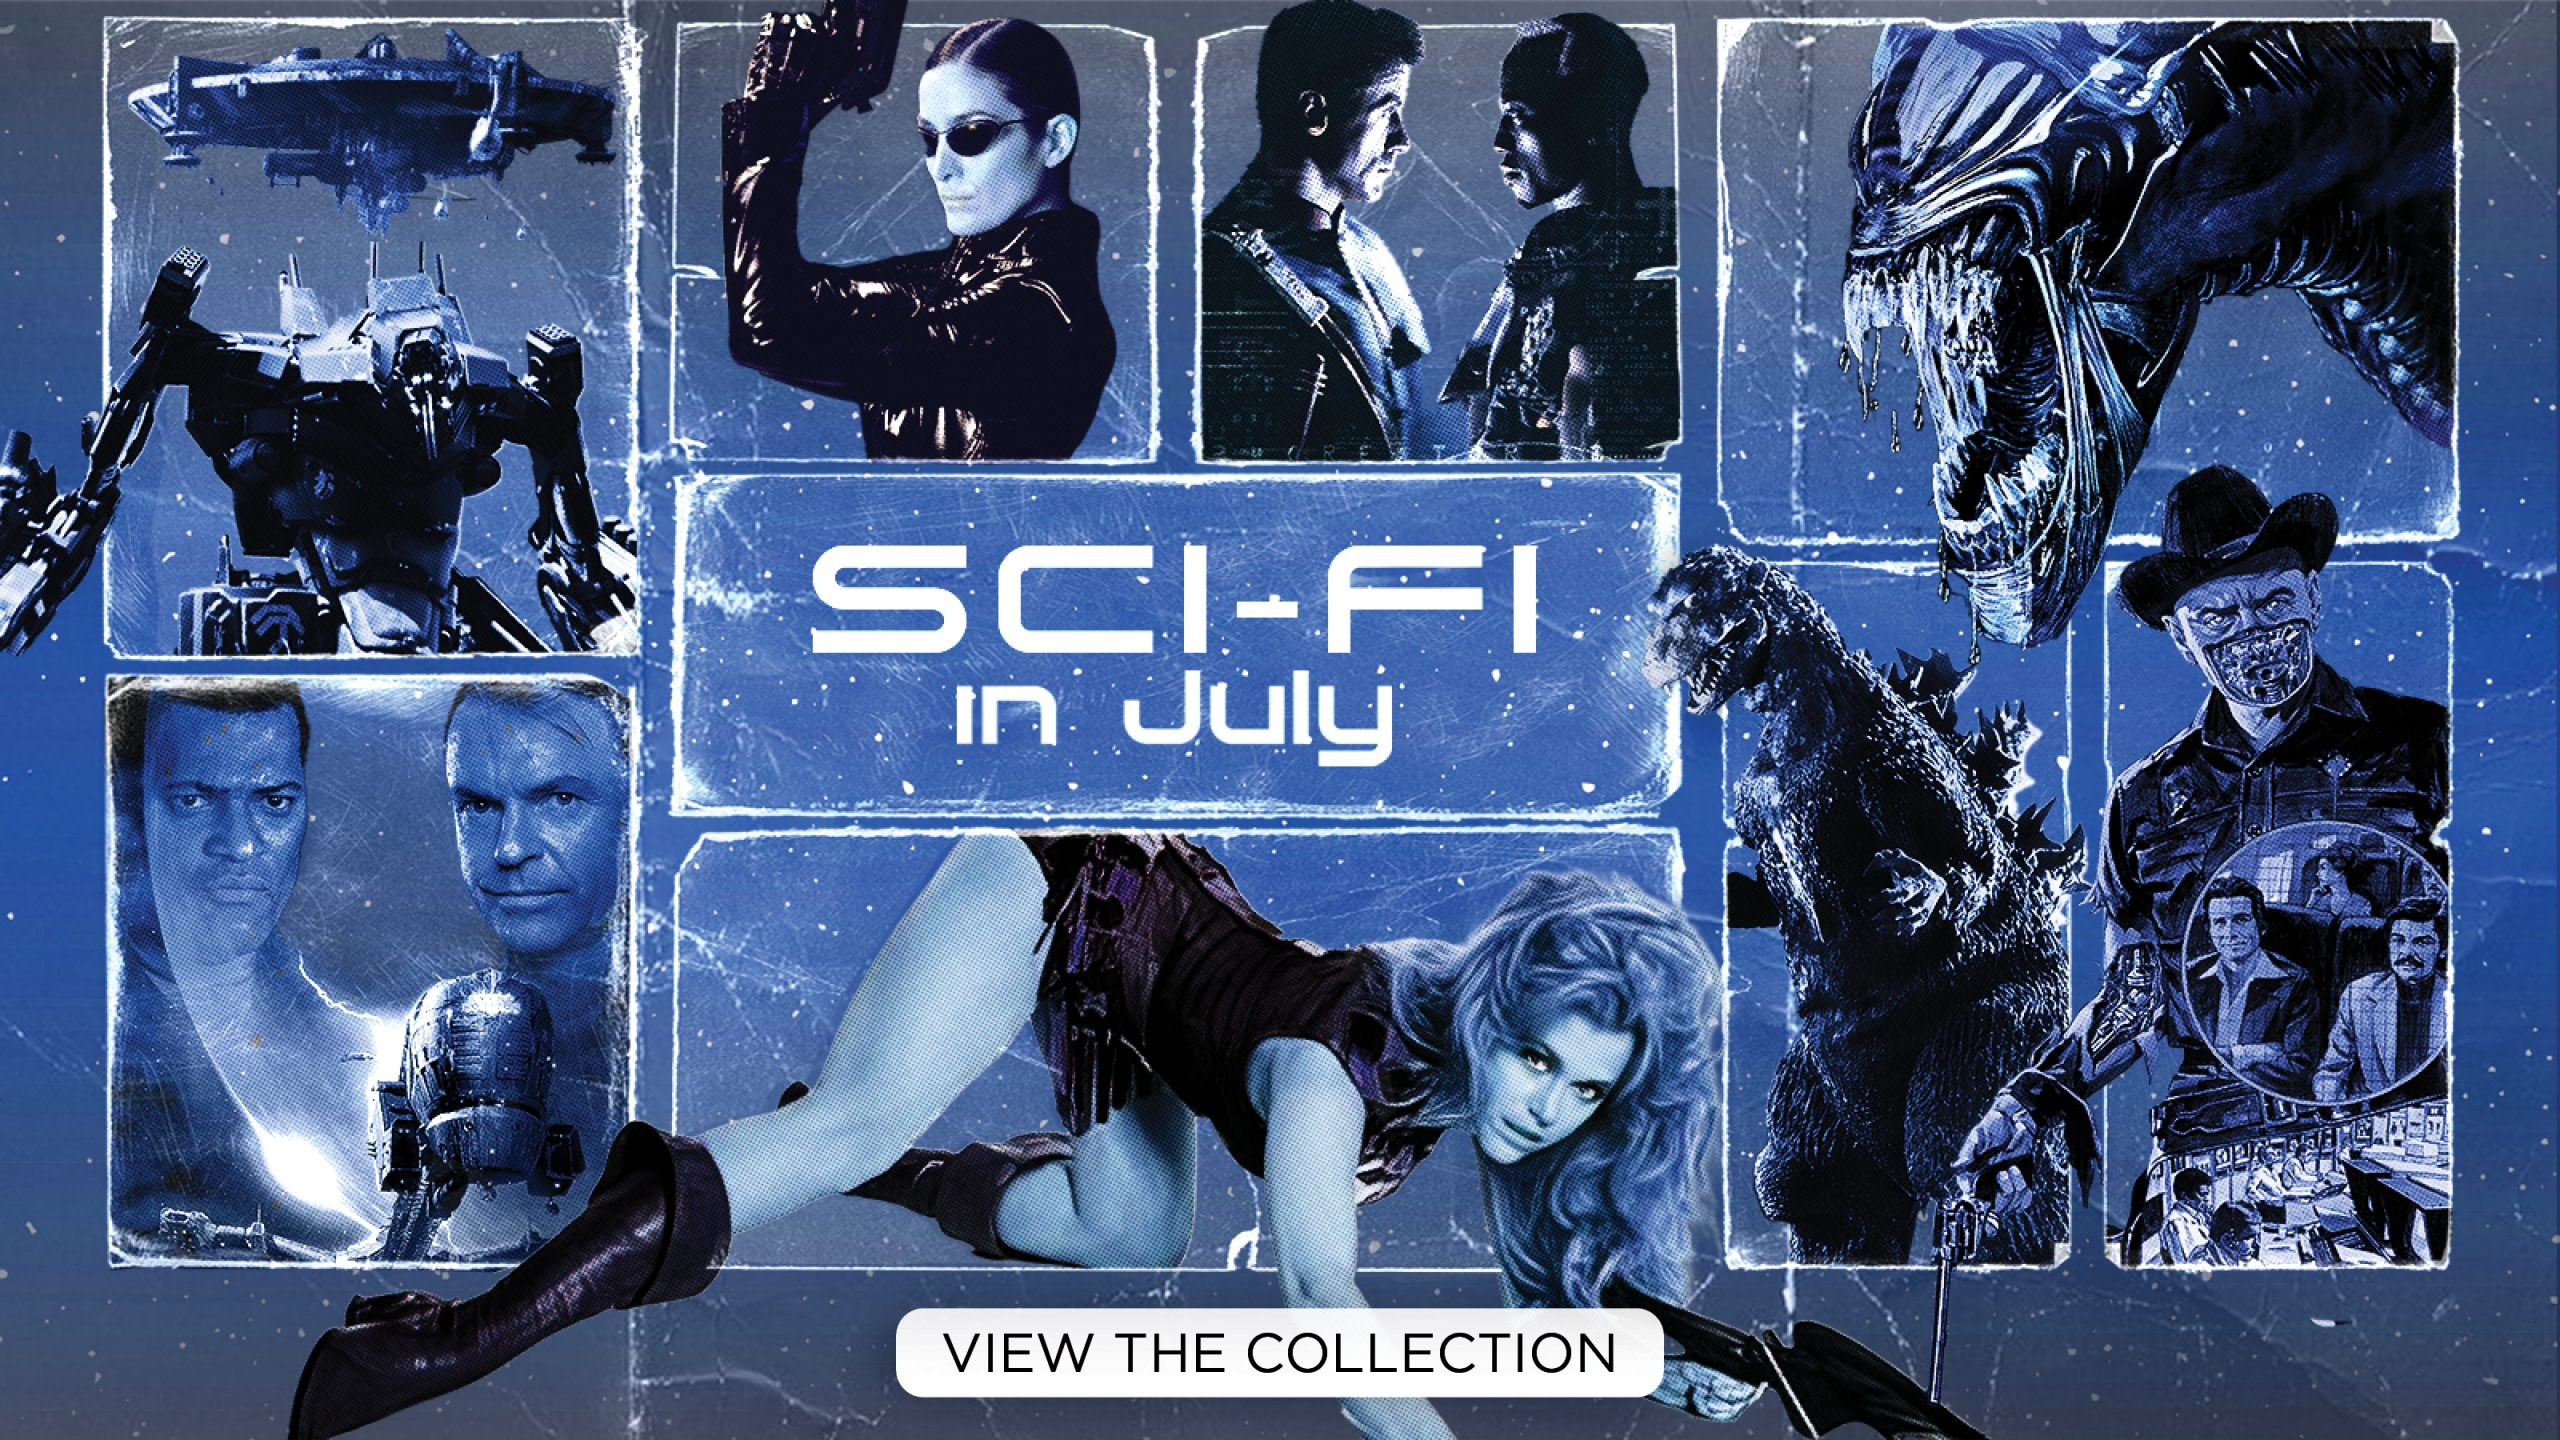 Sci-Fi in July [View the Collection]